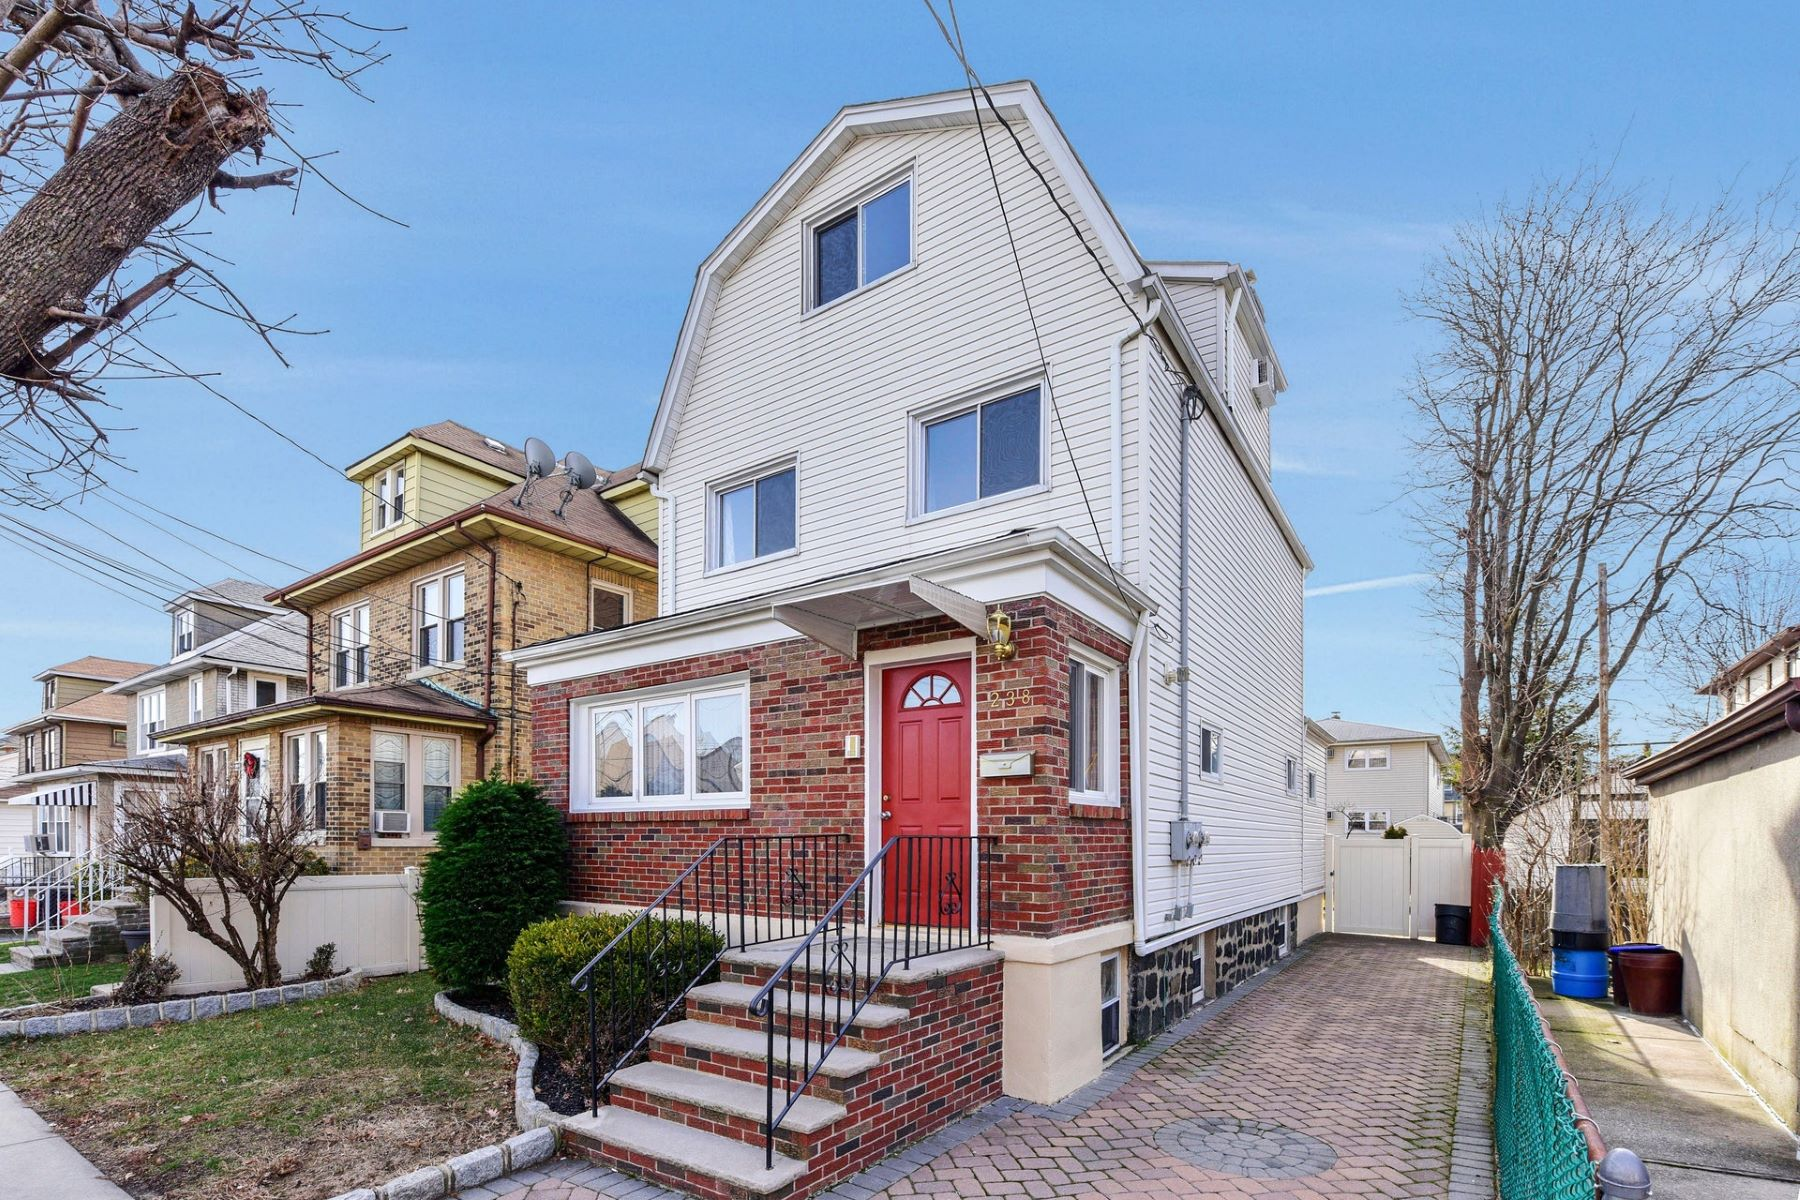 Multi-Family Home for Sale at Great Opportunity! 238 Desoto Pl, Cliffside Park, New Jersey 07010 United States